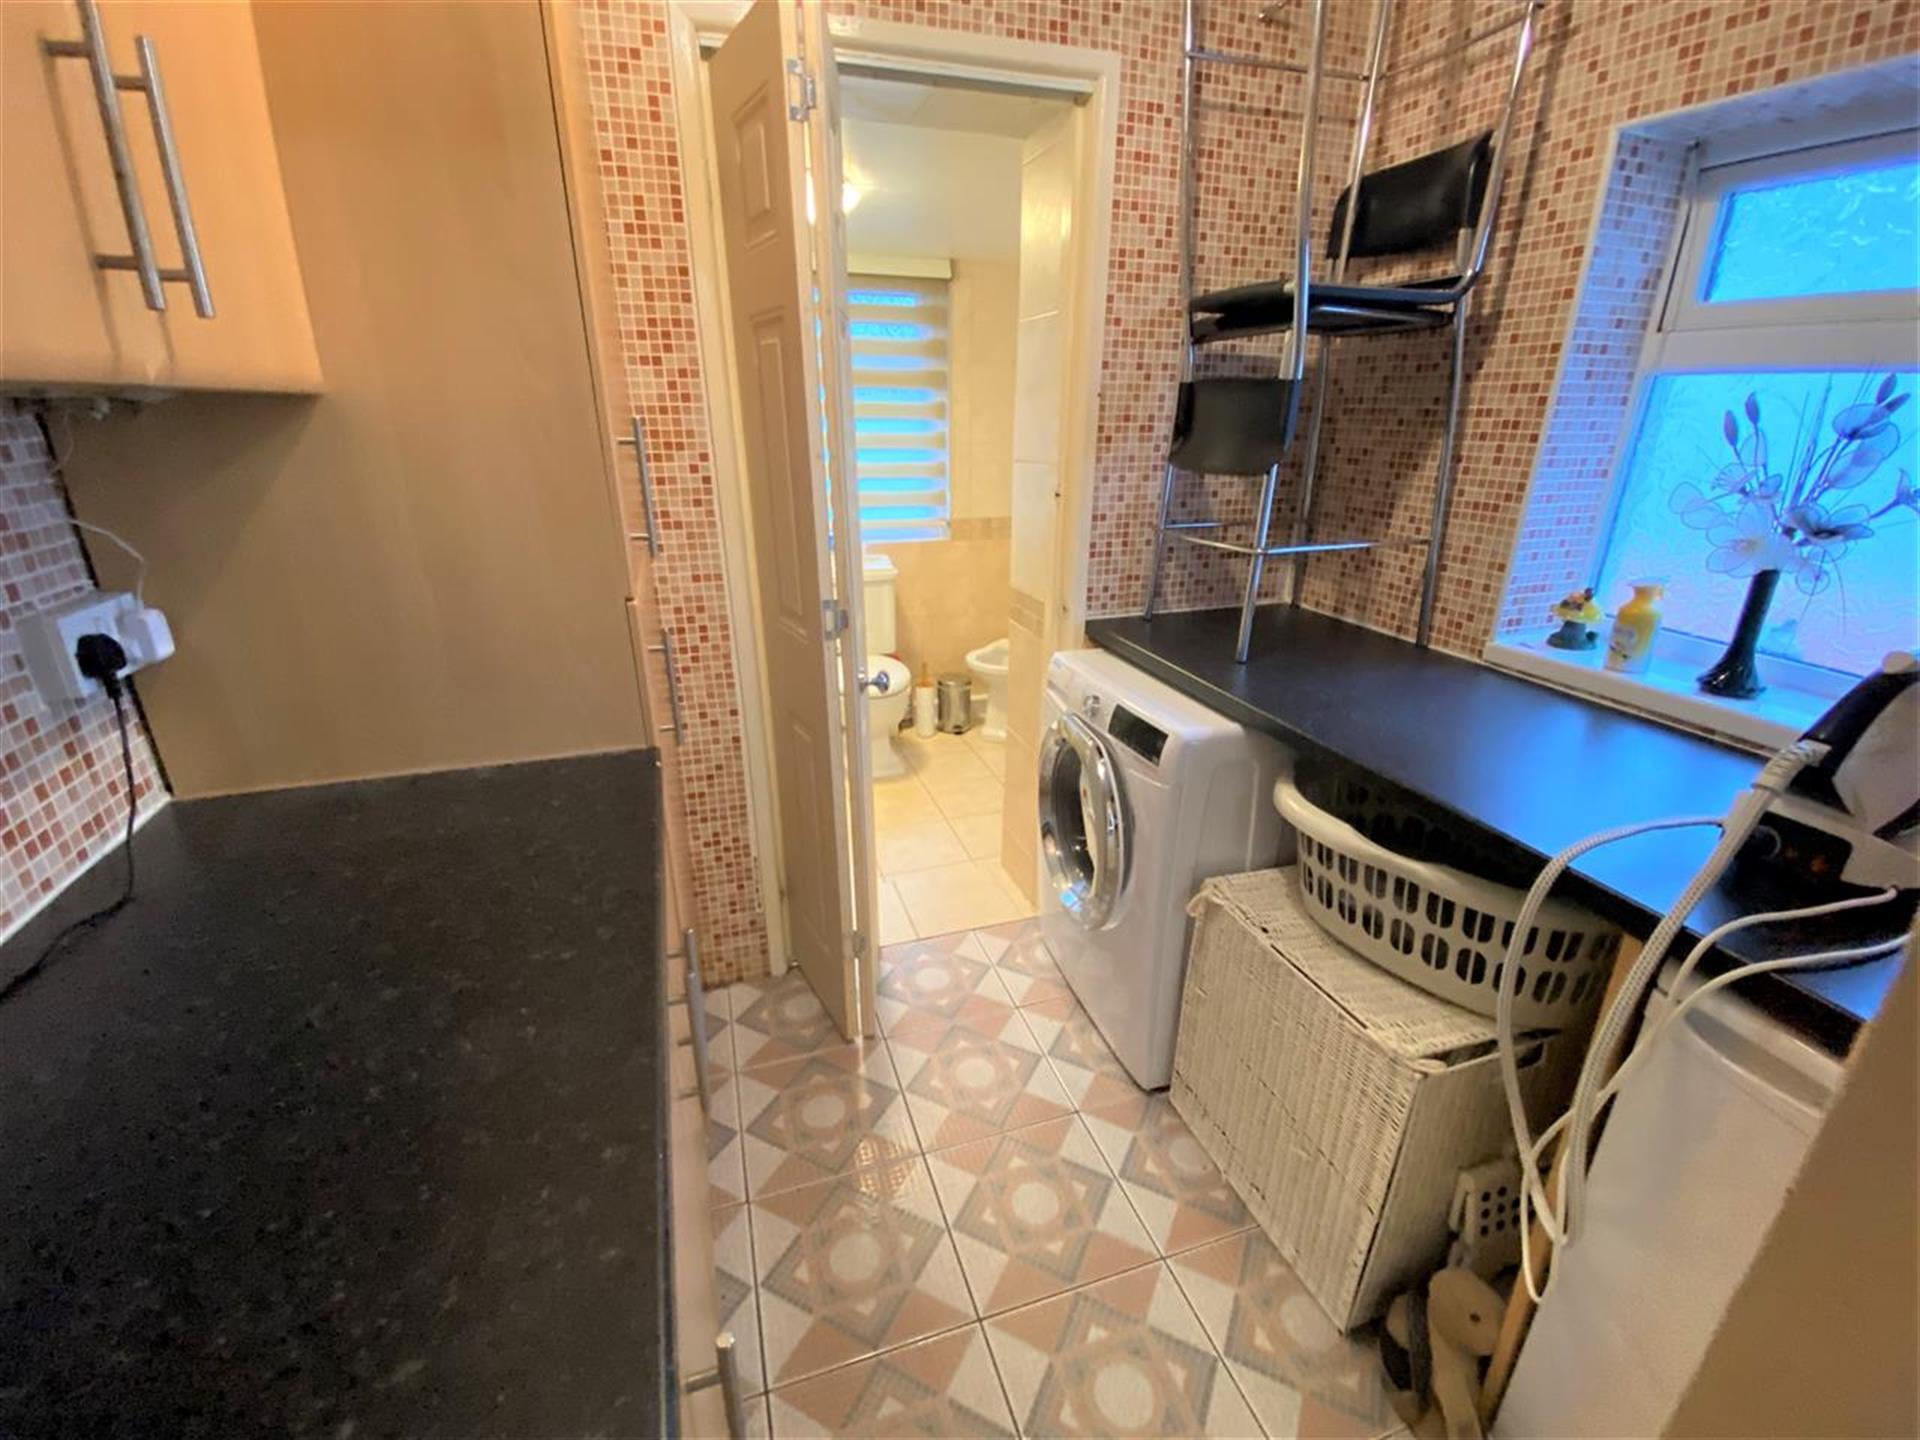 4 Bedroom Semi-detached House For Sale - Utility